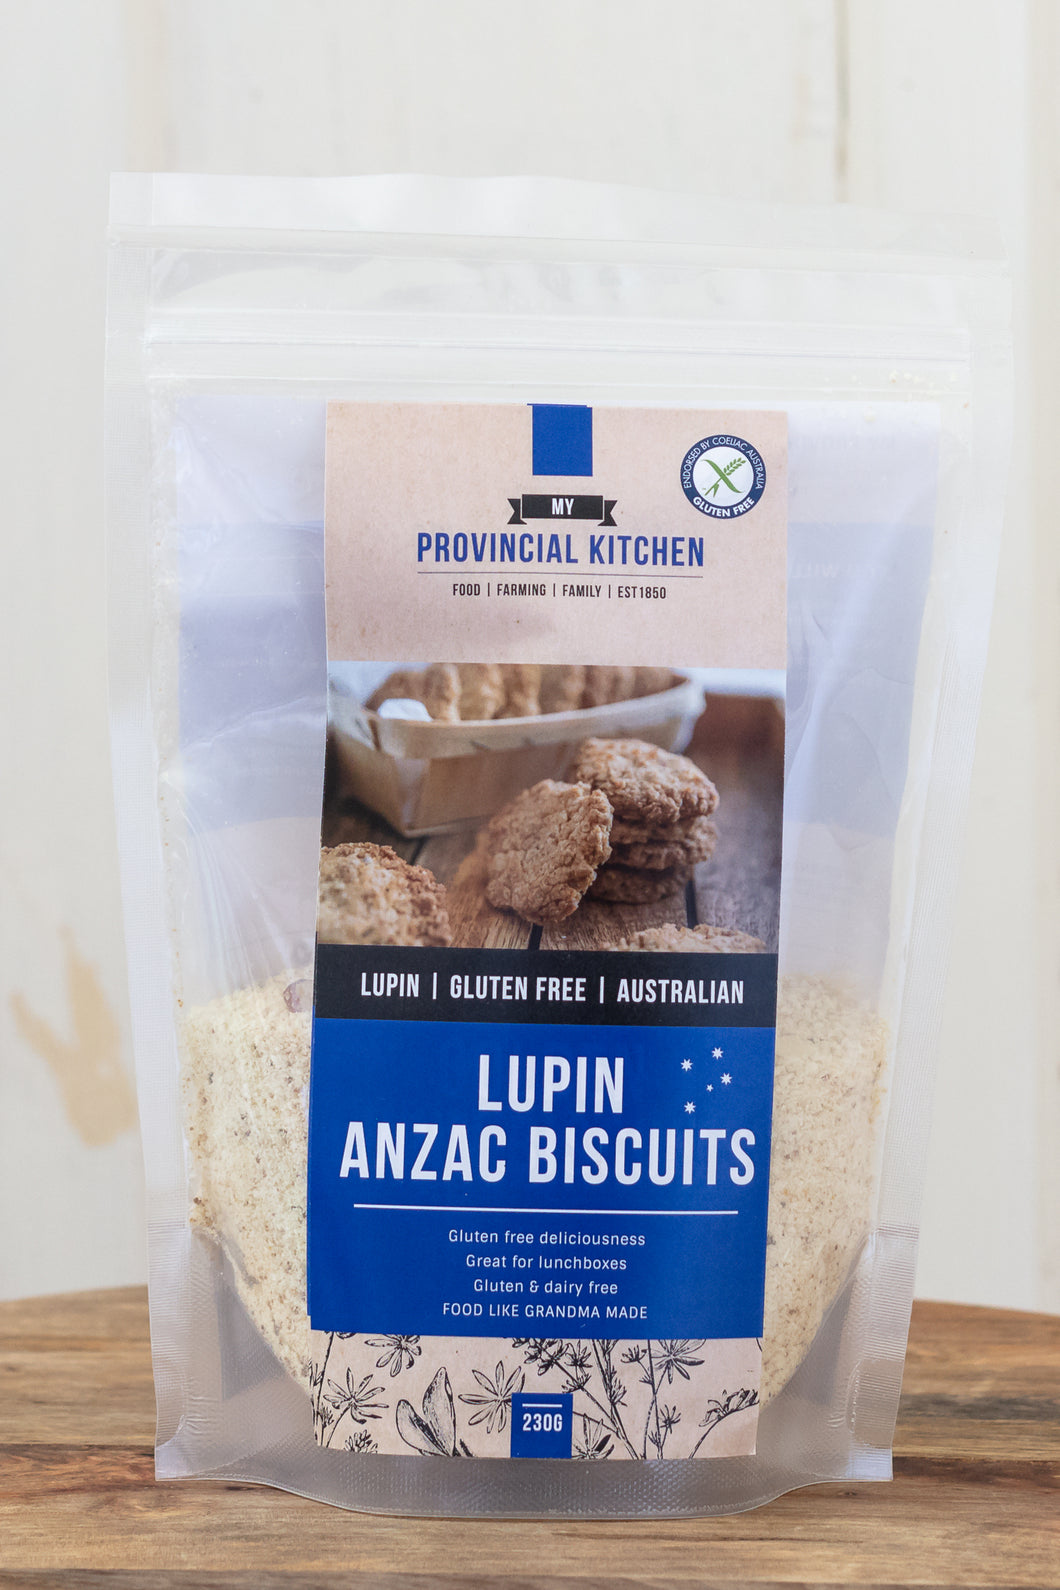 LUPIN ANZAC BISCUITS